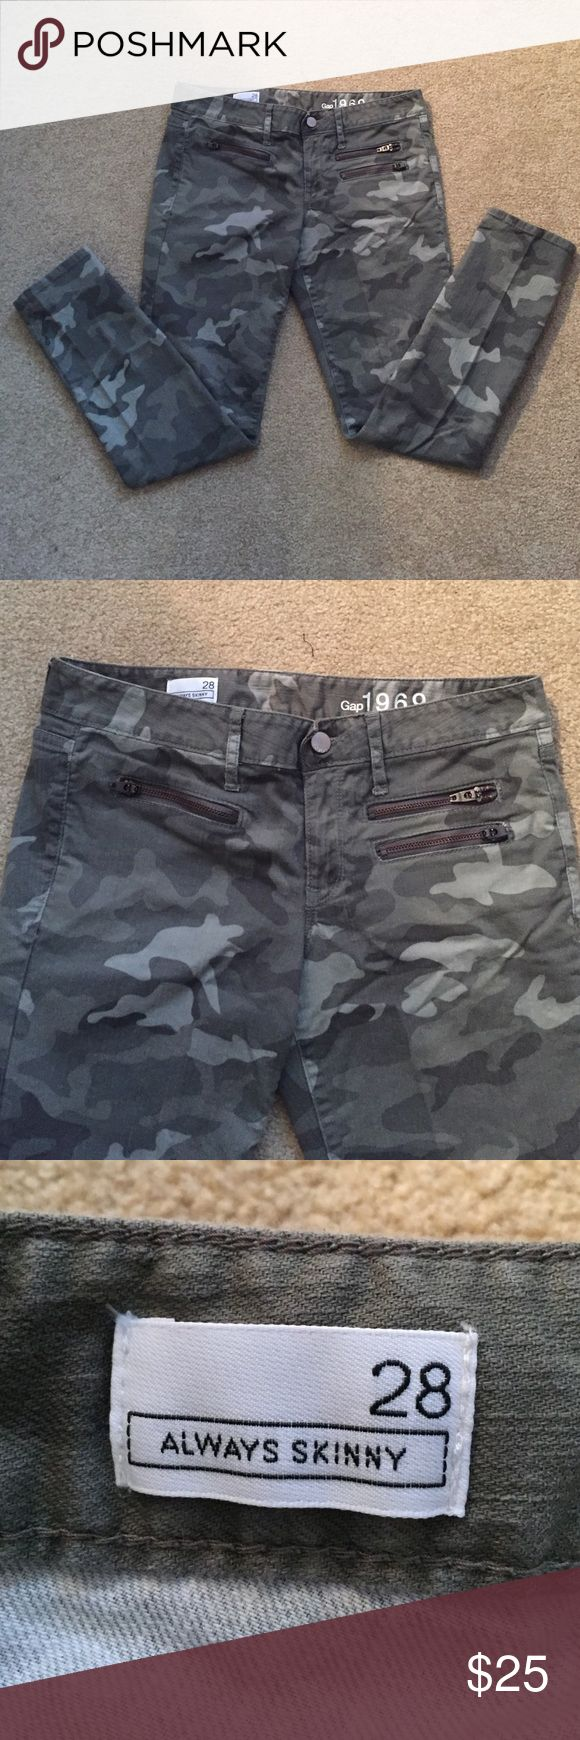 Gap Army Fatigue Skinny Jeans Camouflage jeans worn twice! Size 28 skinny. No front pockets - instead there are 3 zippers (shown in photos). GAP Jeans Skinny